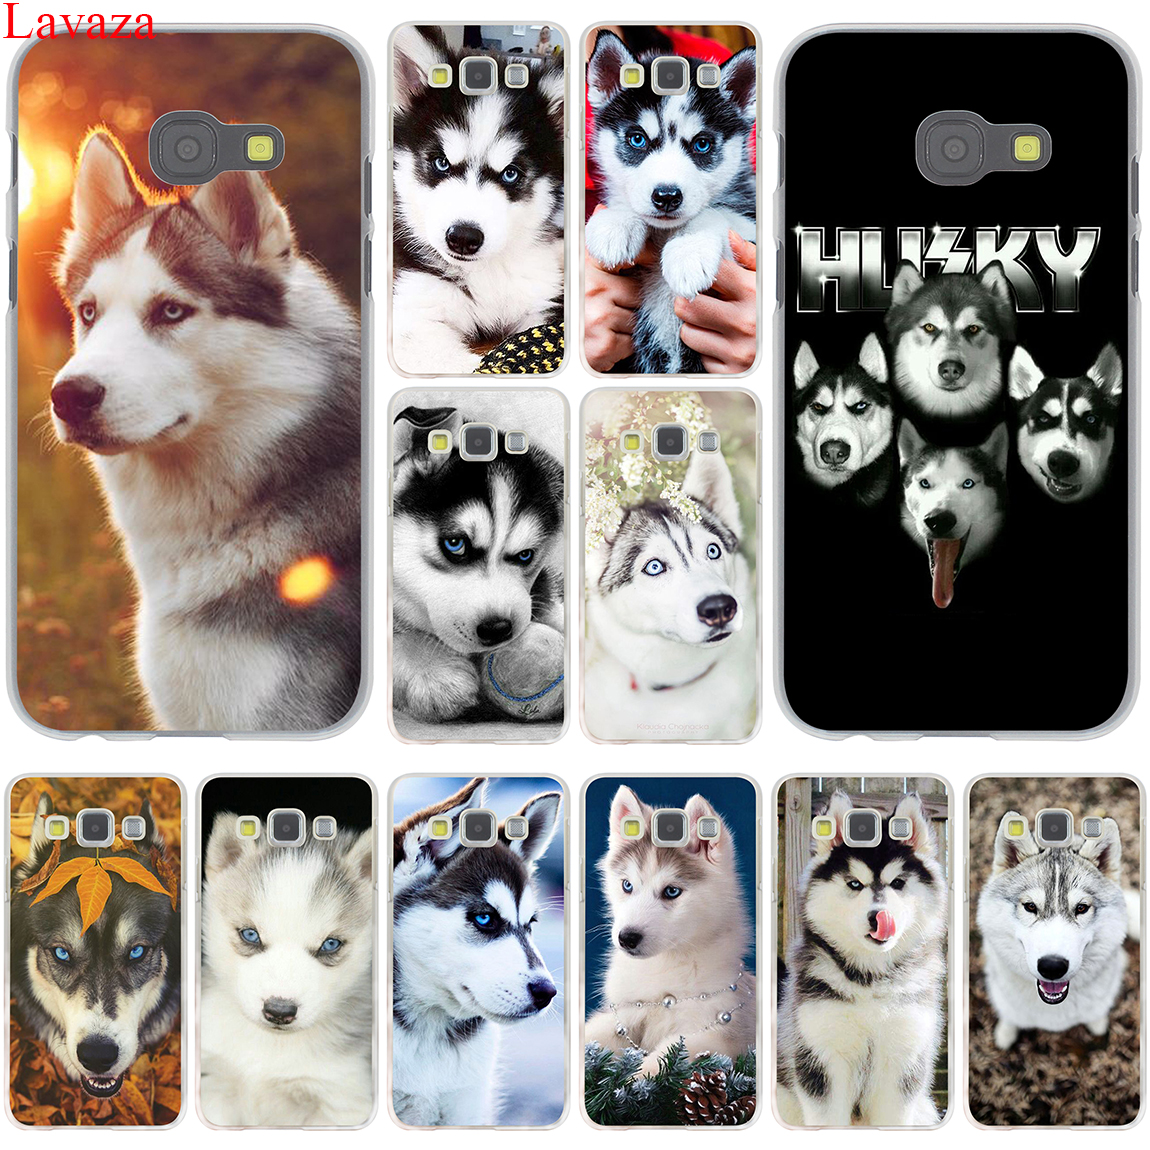 Lavaza Animal Husky puppy Hard for Samsung Galaxy A3 A5 A7 A8 2015 2016 2017 2018 Grand Prime Note 8 5 4 3 2